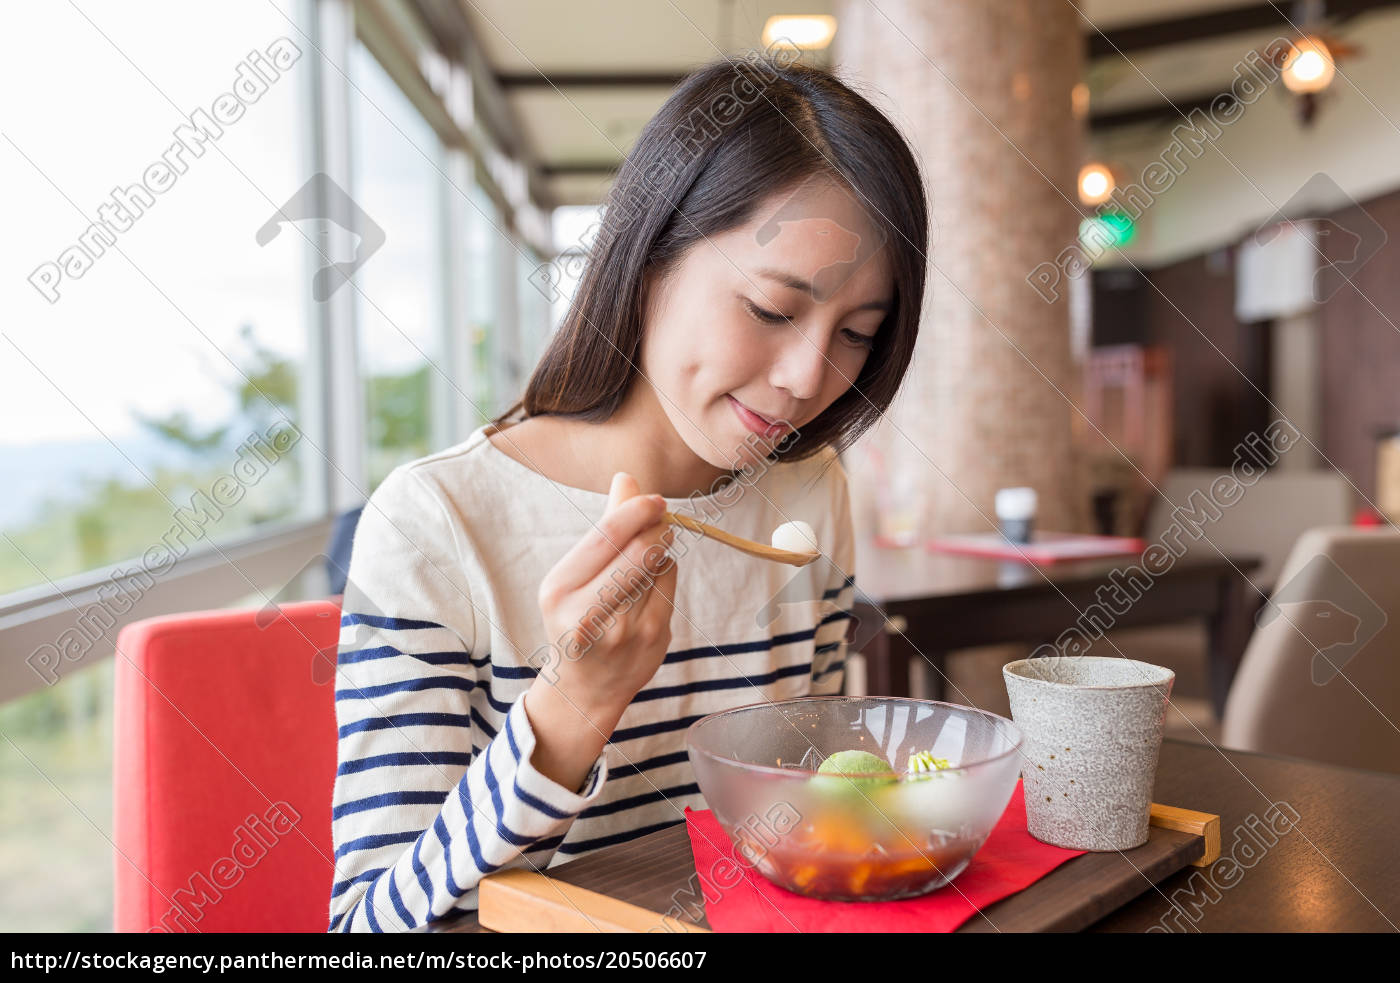 woman, enjoy, dessert - 20506607